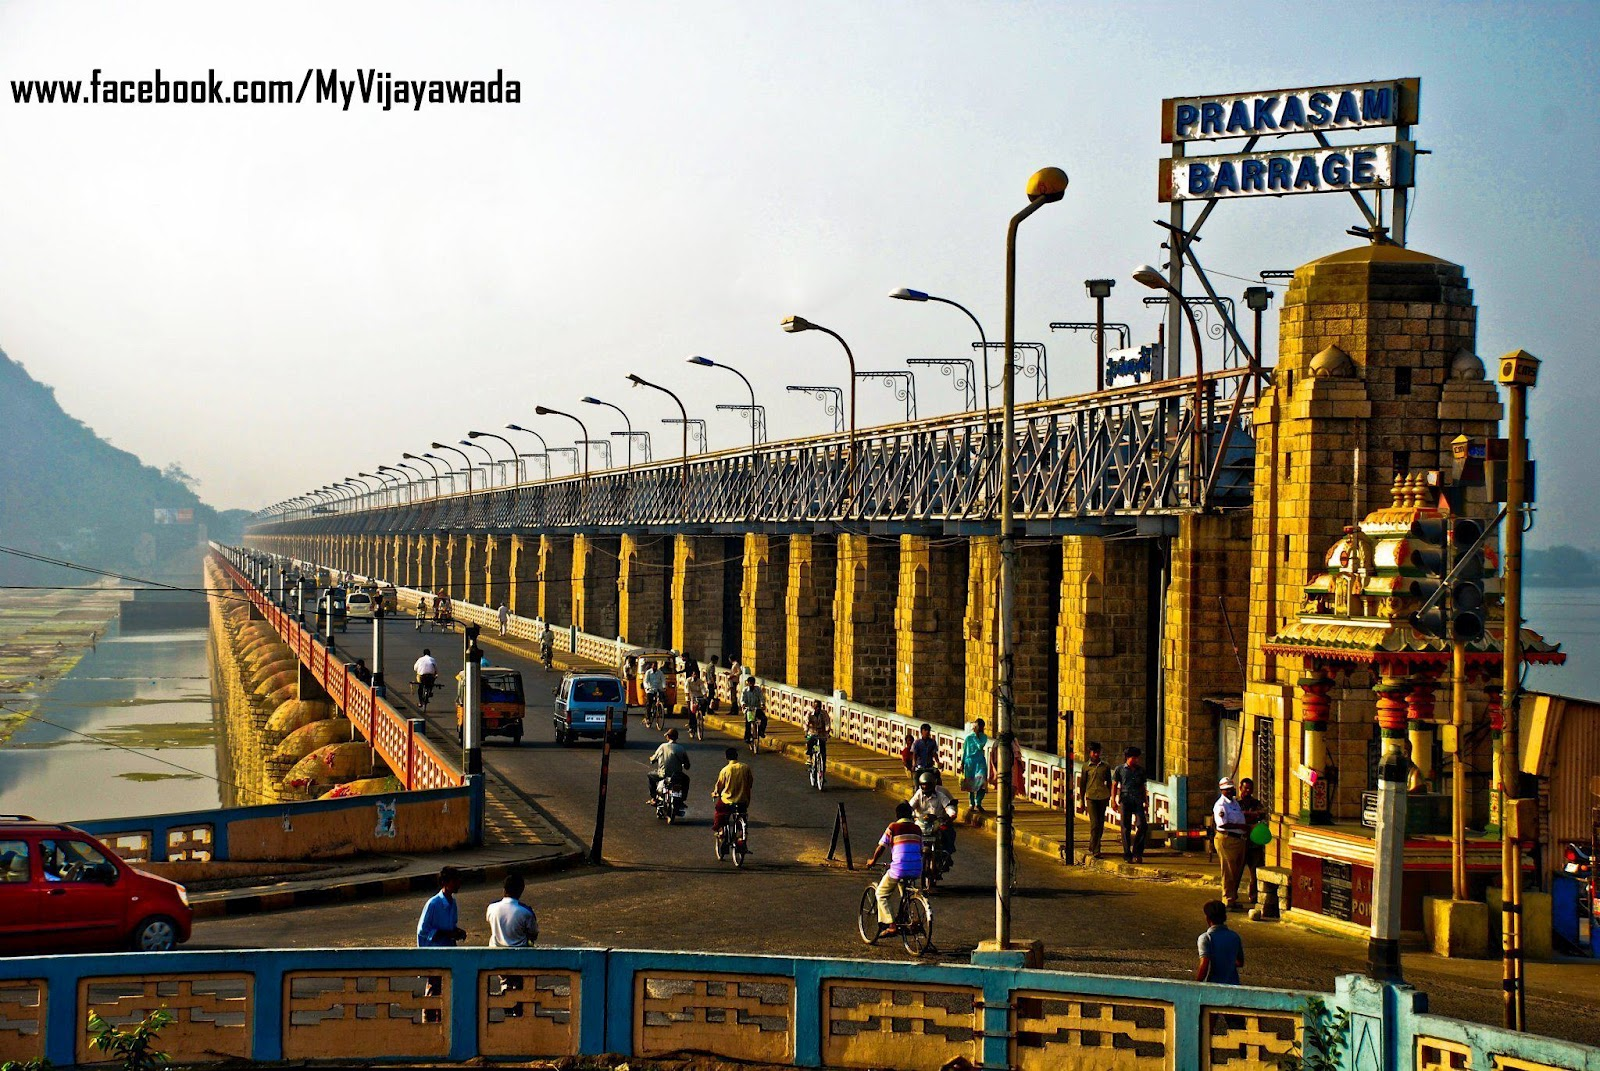 vijayawada in the krishna district of andhra pradesh Vijayawada: the 27 km stretch from vaikuntapuram and chodavaram in krishna district along krishna river would get a boost from the proposed development plans by the state government the state.